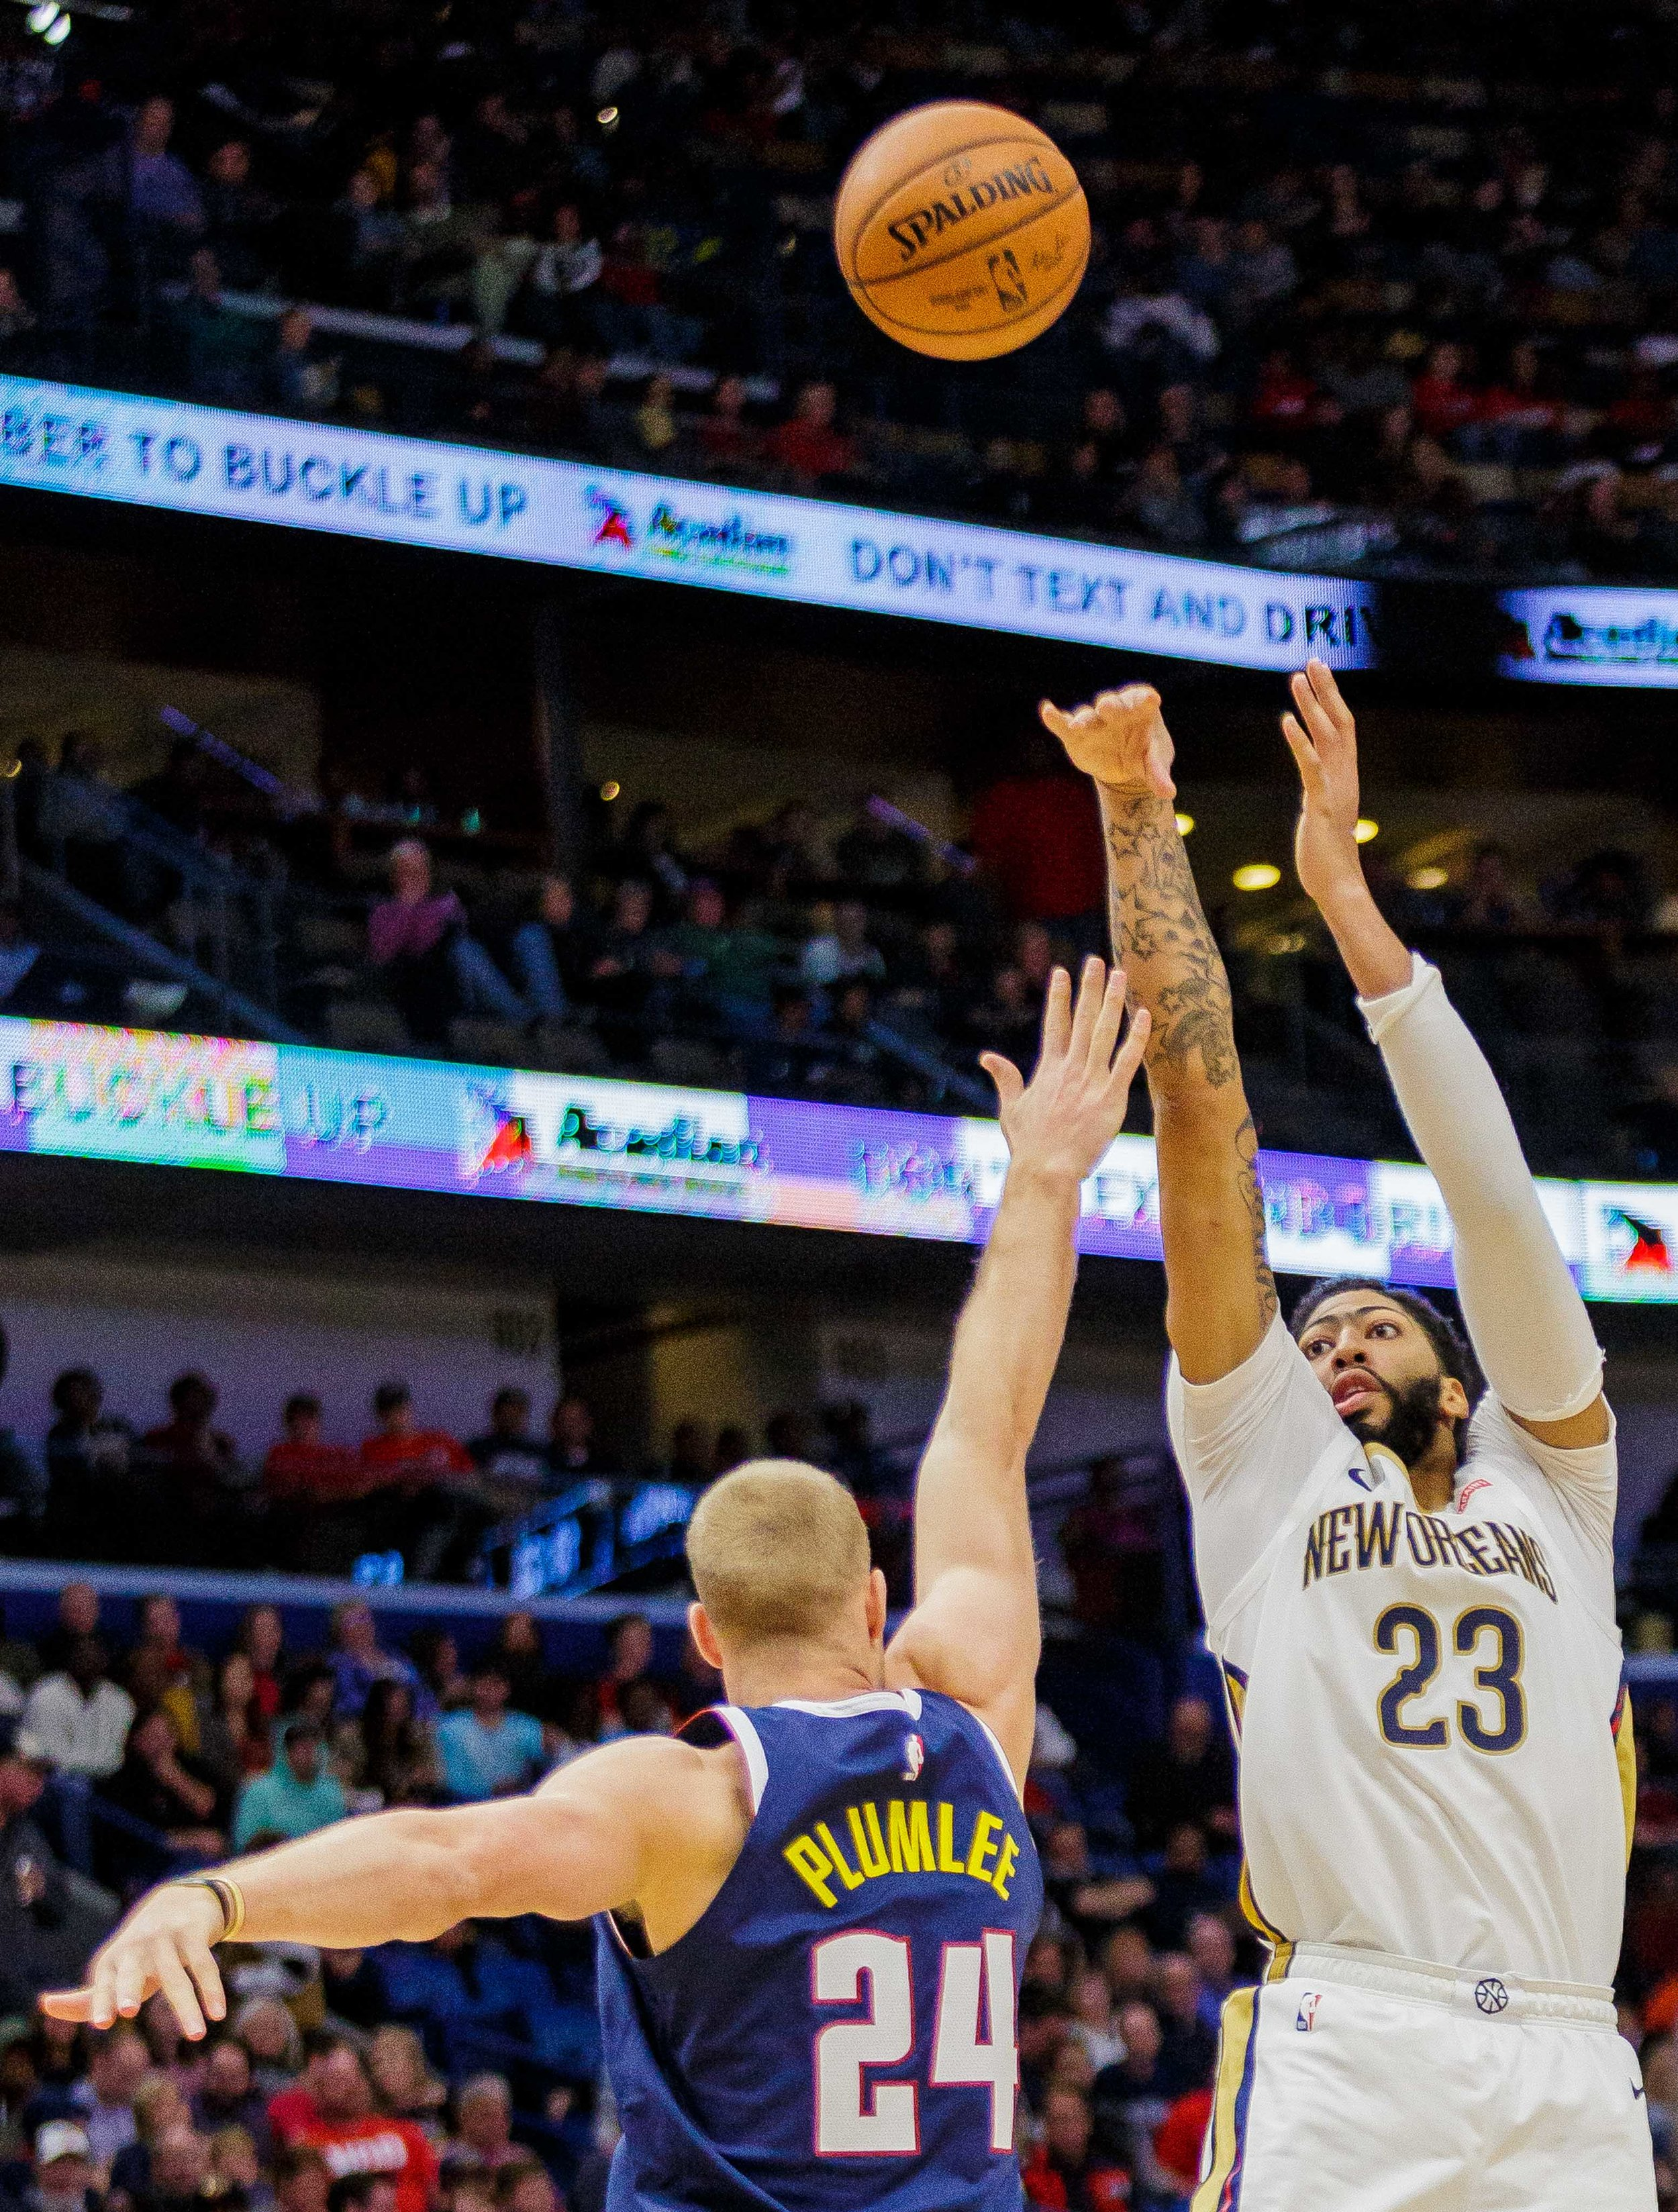 New OrleansPelicansforward Anthony Davis (23) shoots over Denver Nuggets forward Mason Plumlee (24) in the second half of an NBA basketball game in the Smoothie King Center in New Orleans, La. Monday, Nov. 17, 2018. ThePelicanswon, 125-115.